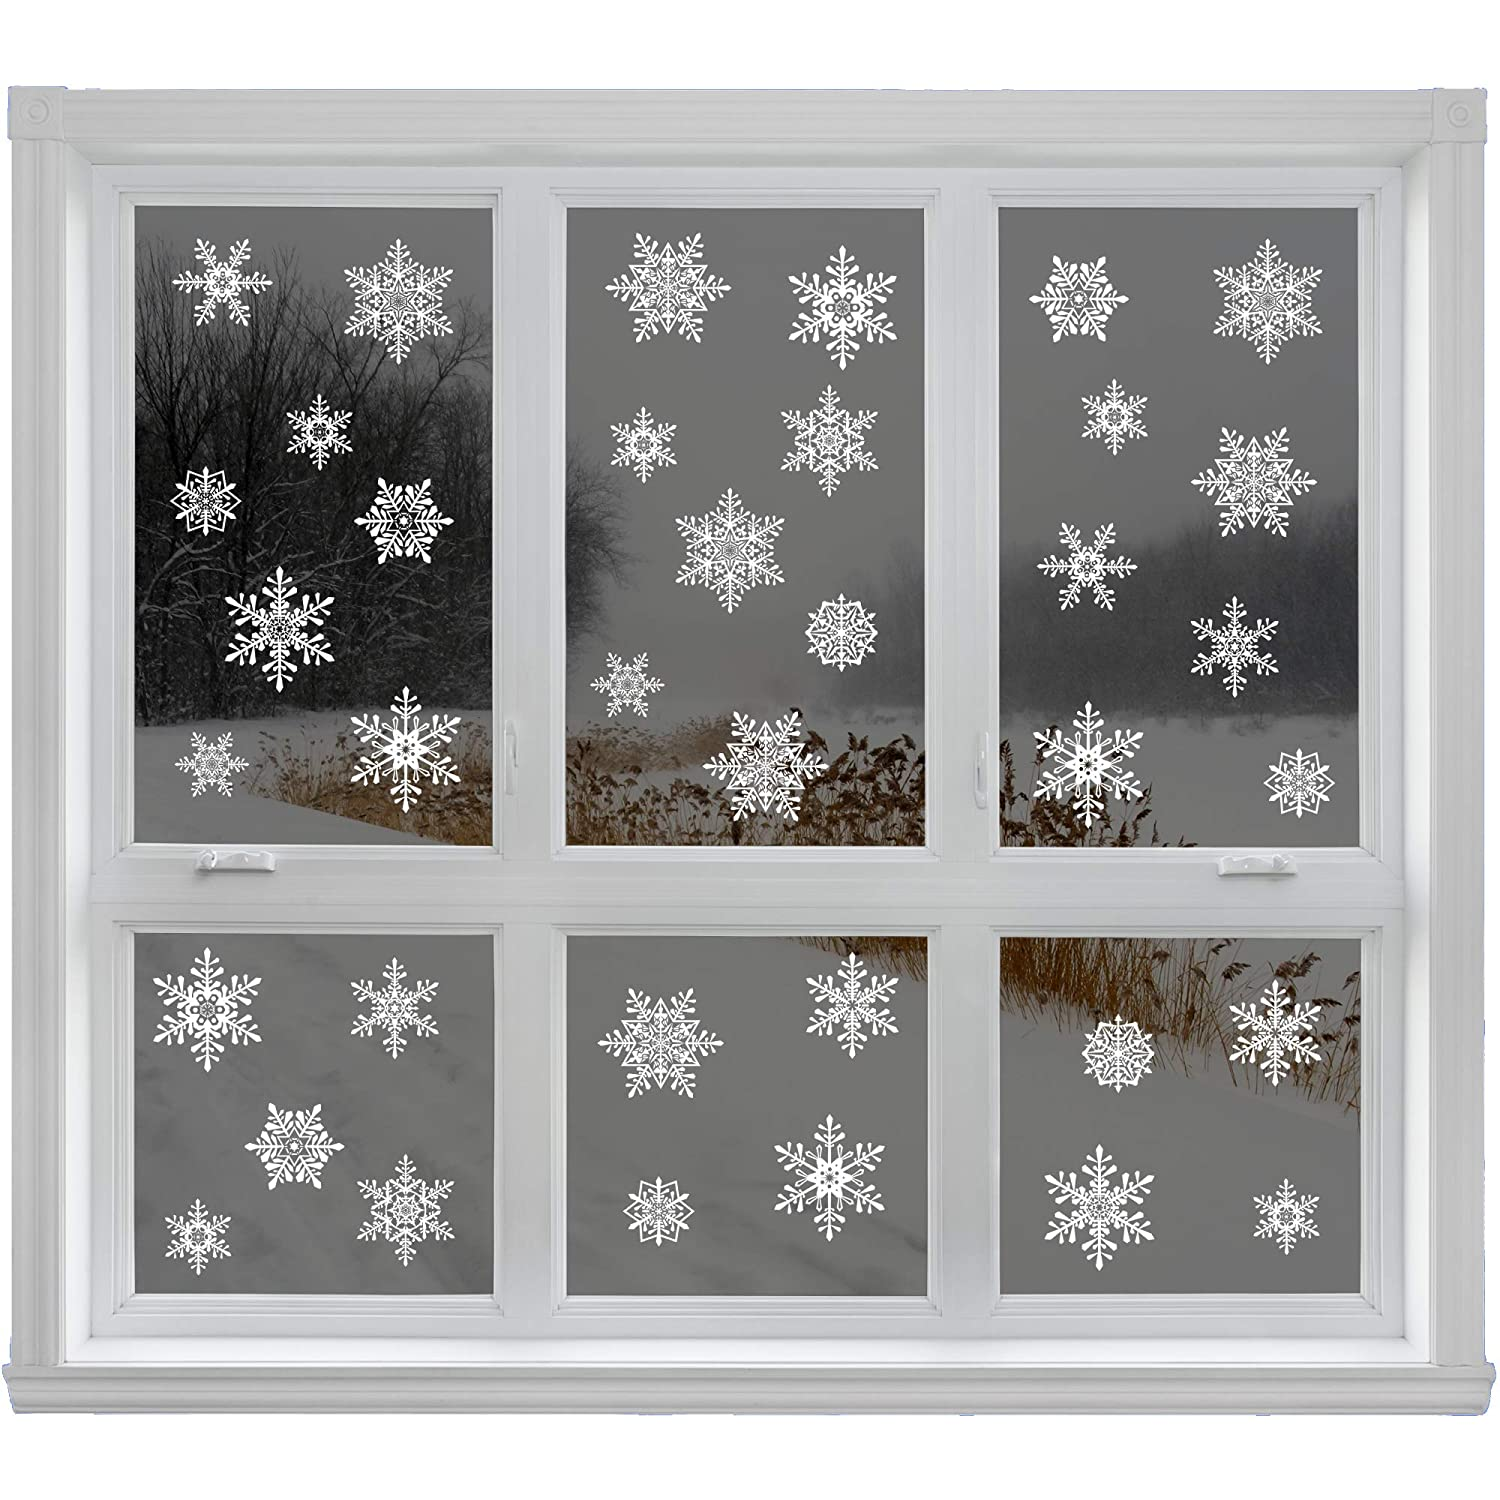 42 Elegant Snowflake Window Clings - Quick and Simple Christmas Decorations - Glueless PVC Stickers Articlings